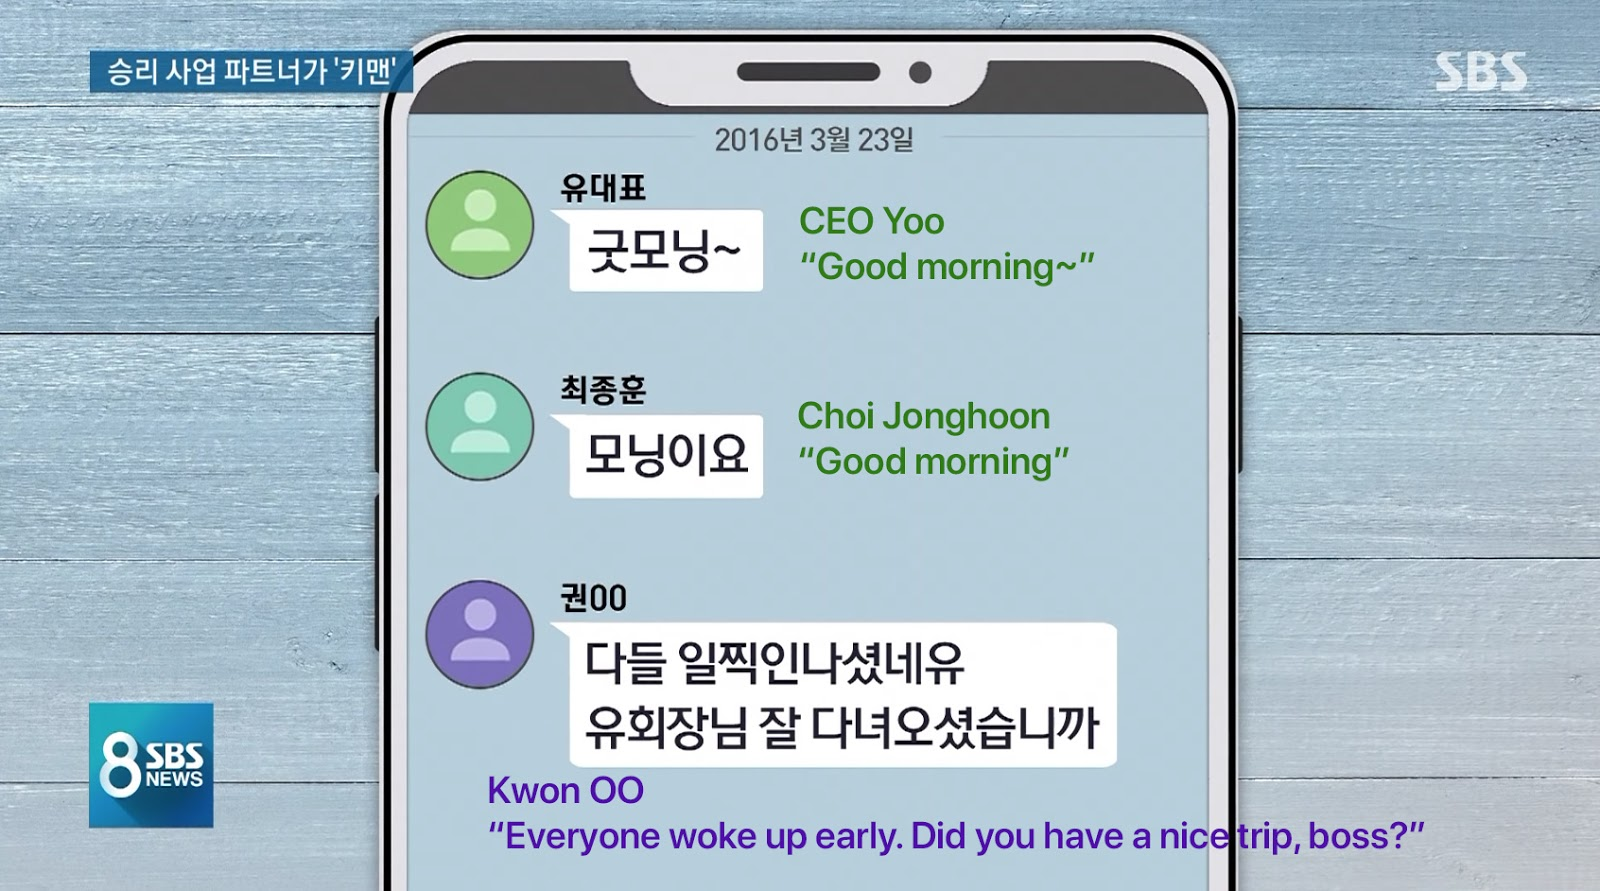 seungri ceo yoo chat 1